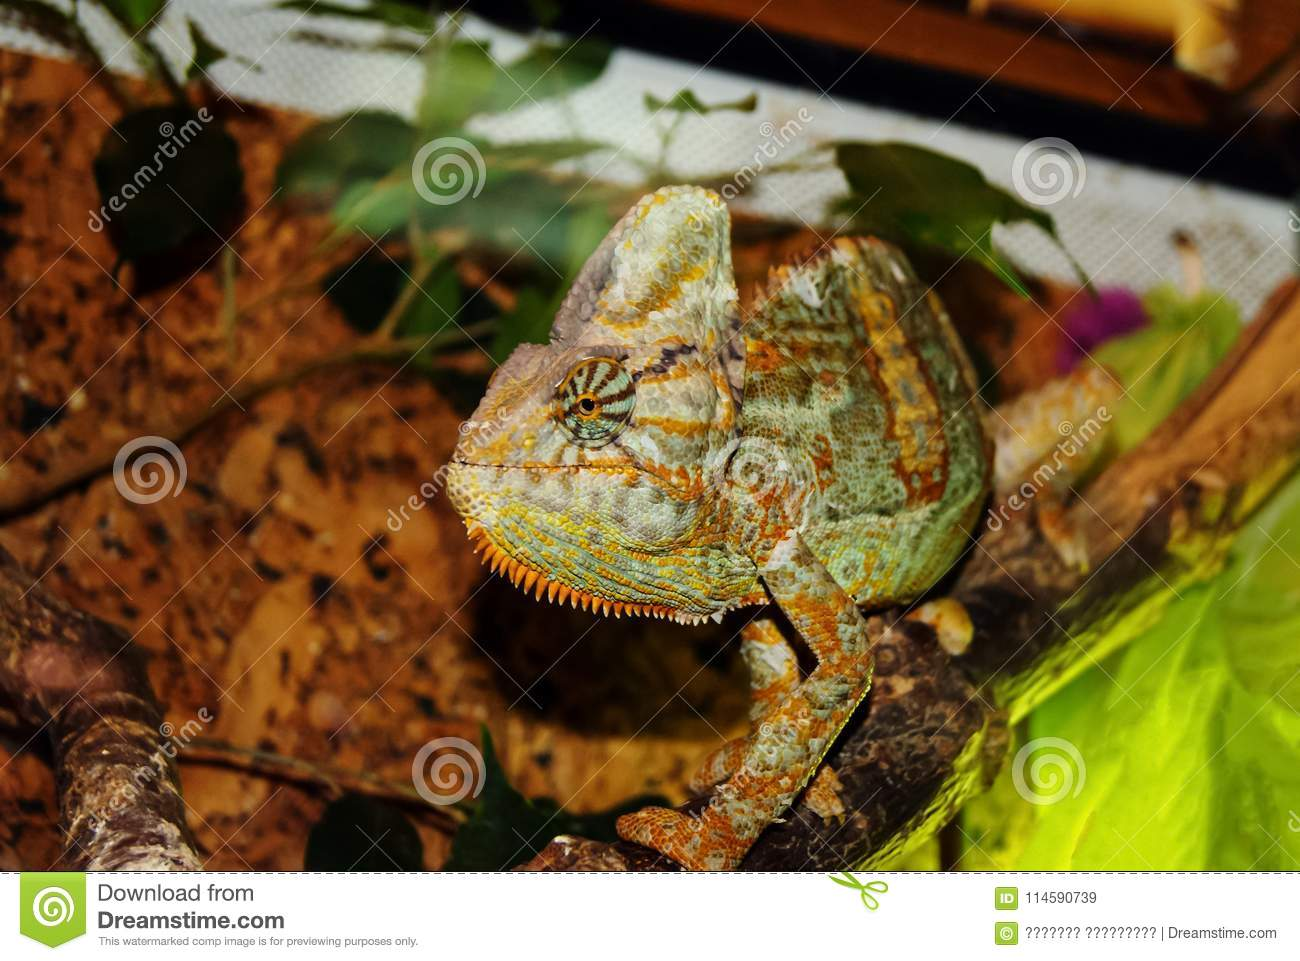 Veiled Chameleon In The Terrarium In Profile Editorial Stock Image Image Of Colored Lizard 114590739